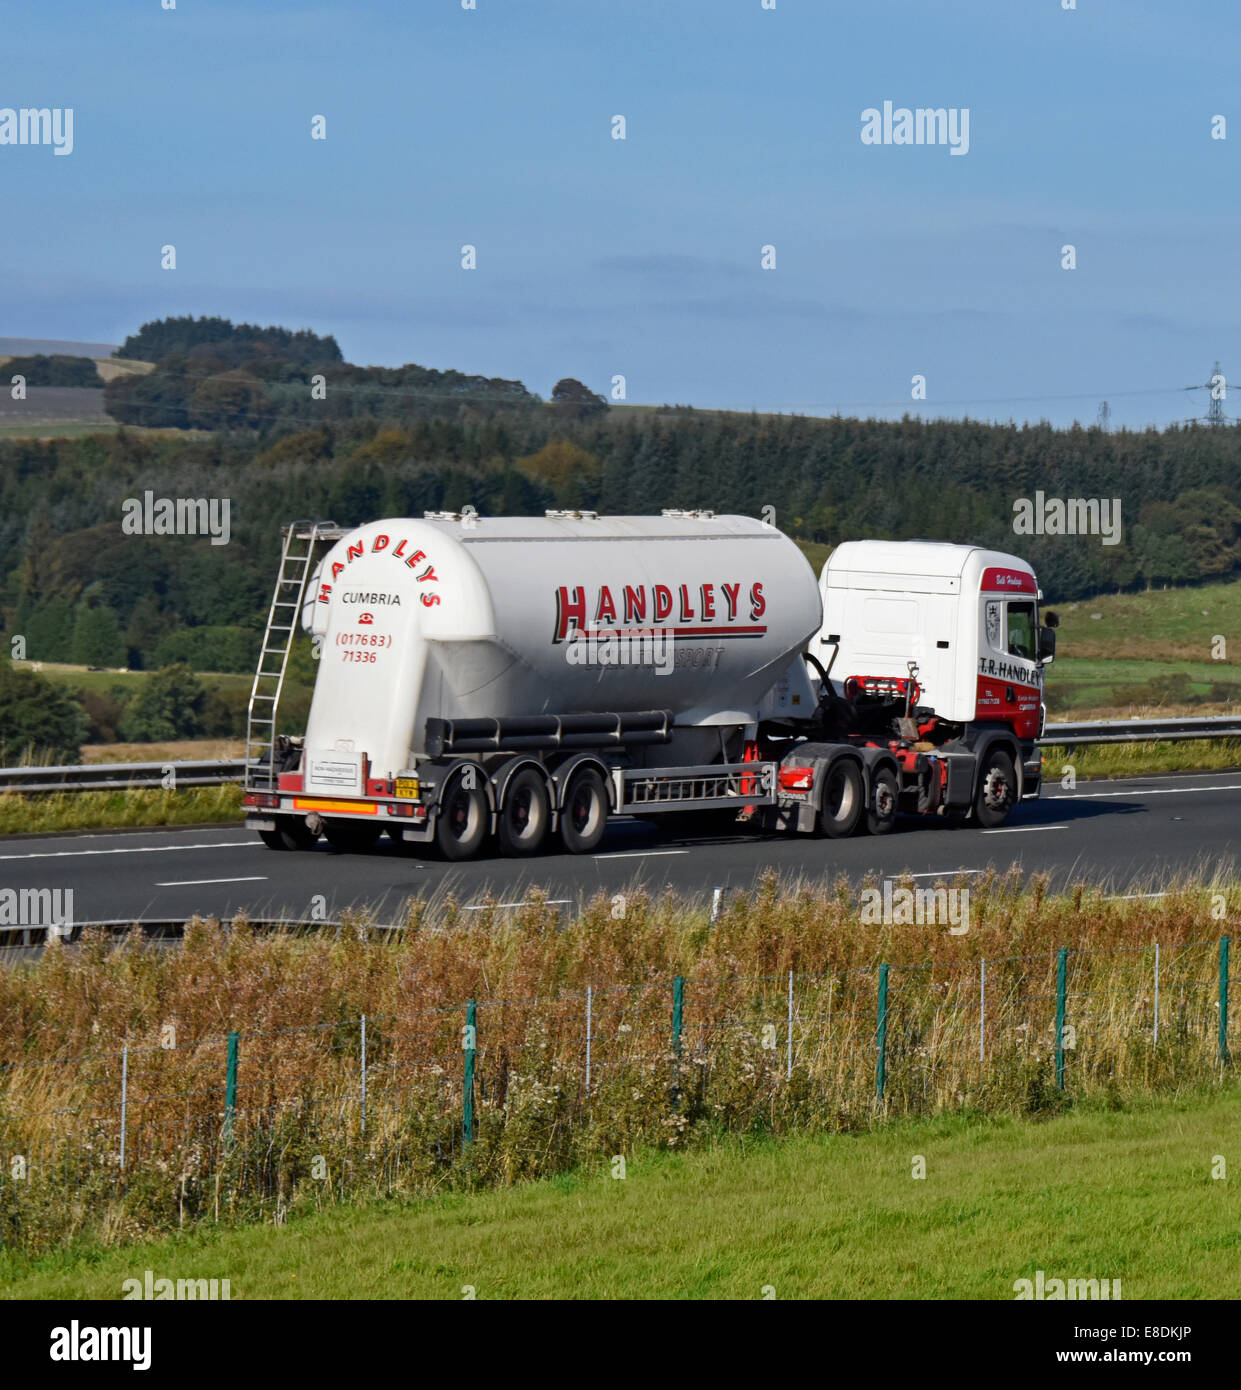 Bulk Transport Stock Photos & Bulk Transport Stock Images - Alamy